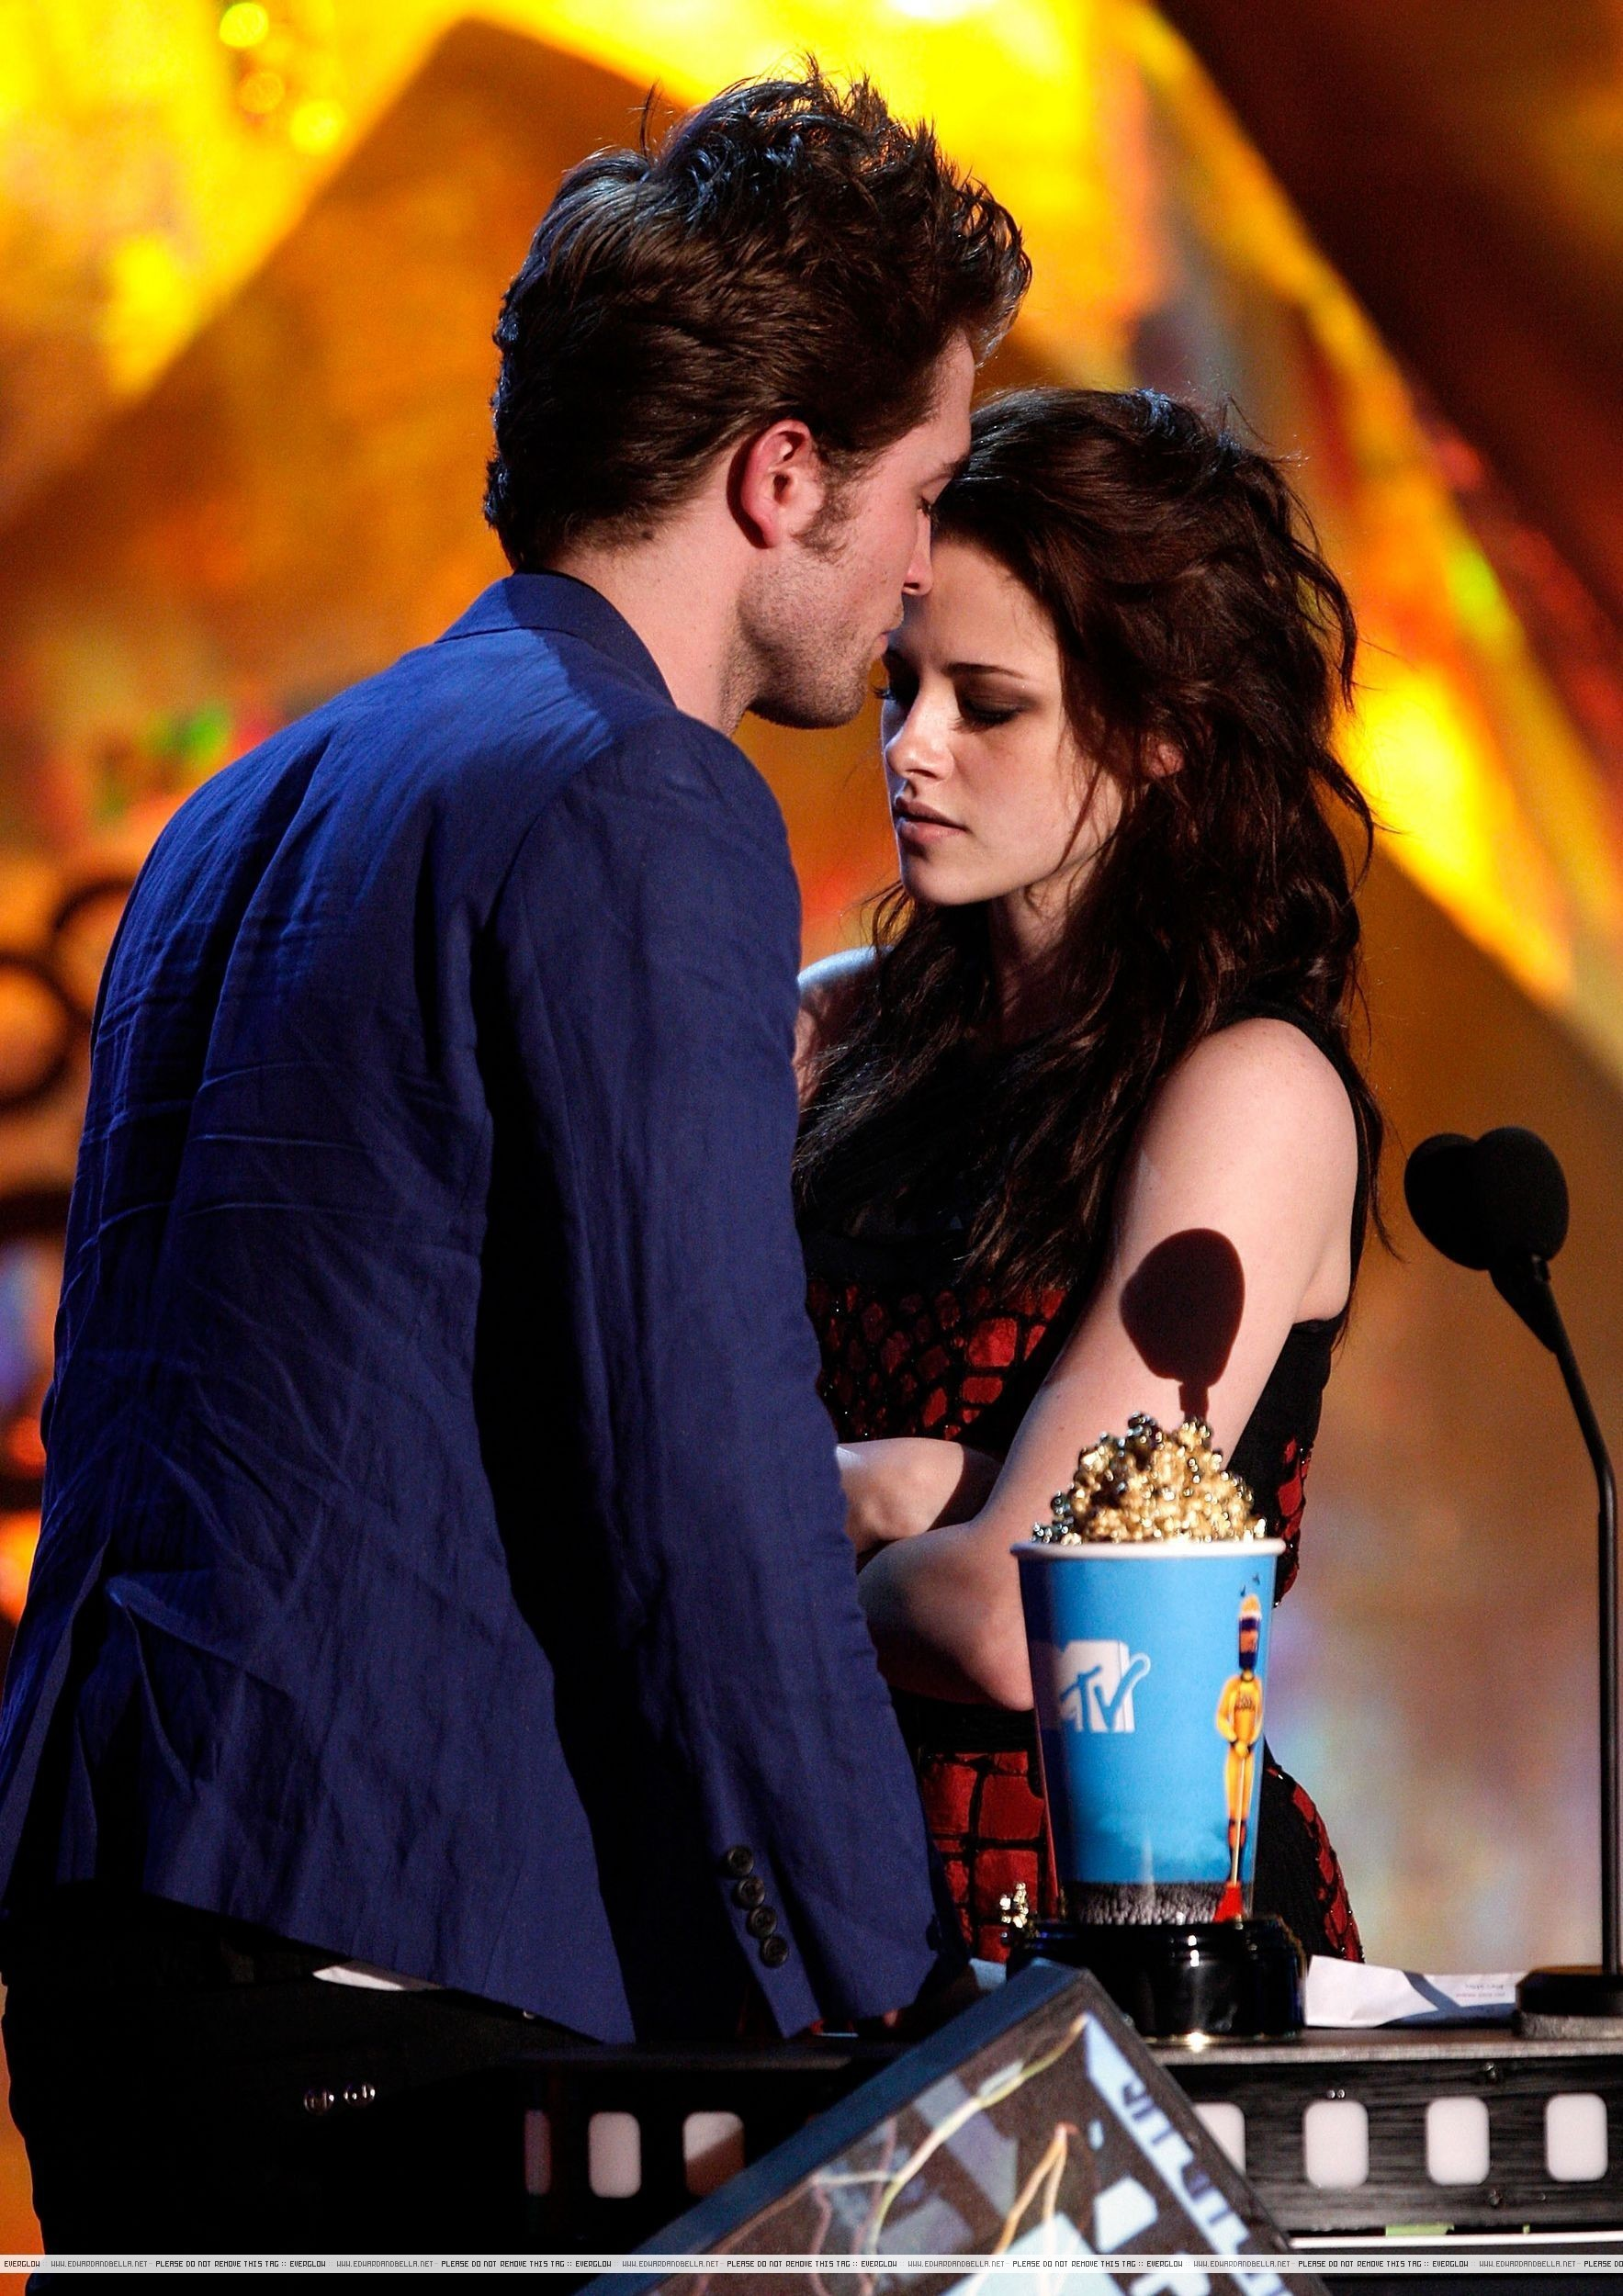 mtv movie awards:)